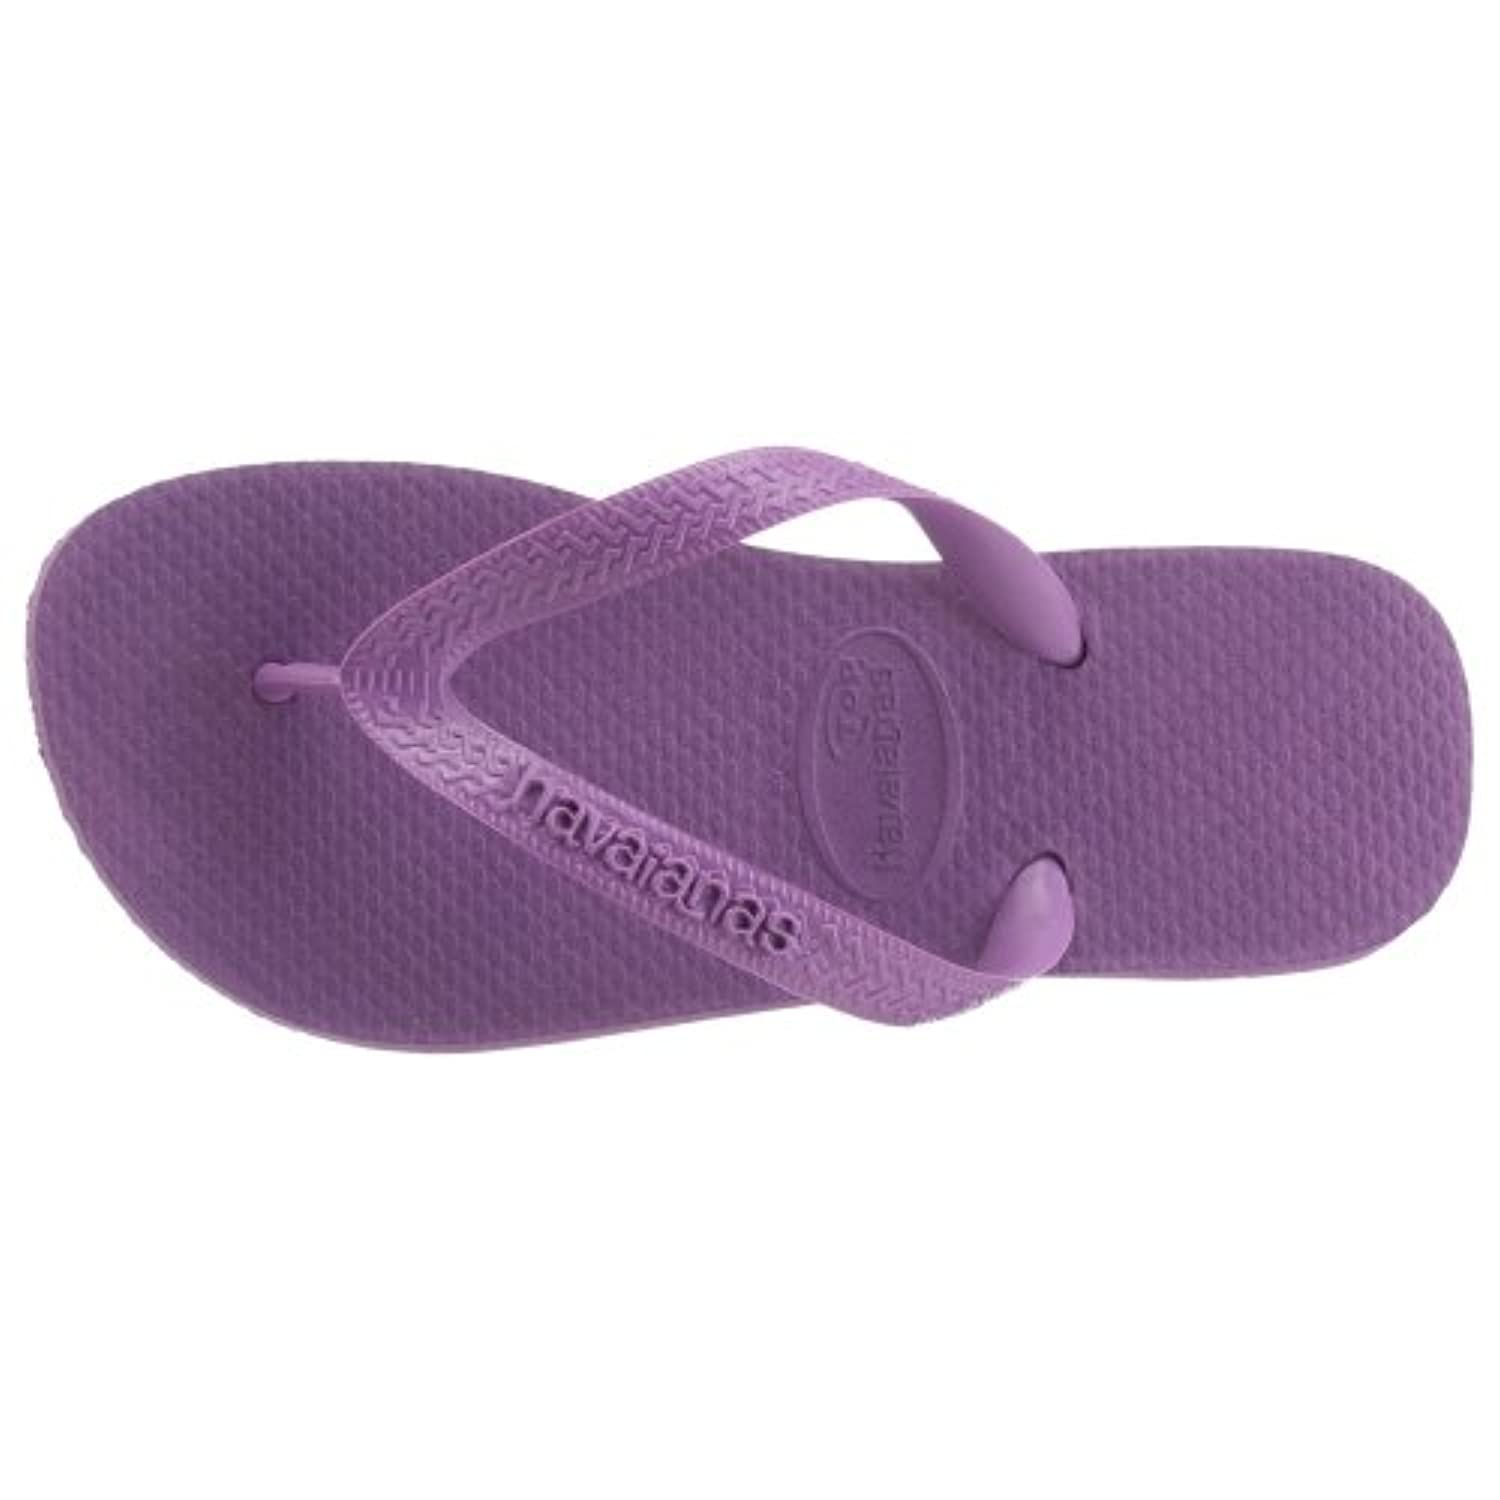 Havaianas Top, Unisex Adults' Flip Flop Sandals, Purple-  5 UK (39/40 EU) (37/38 BR)